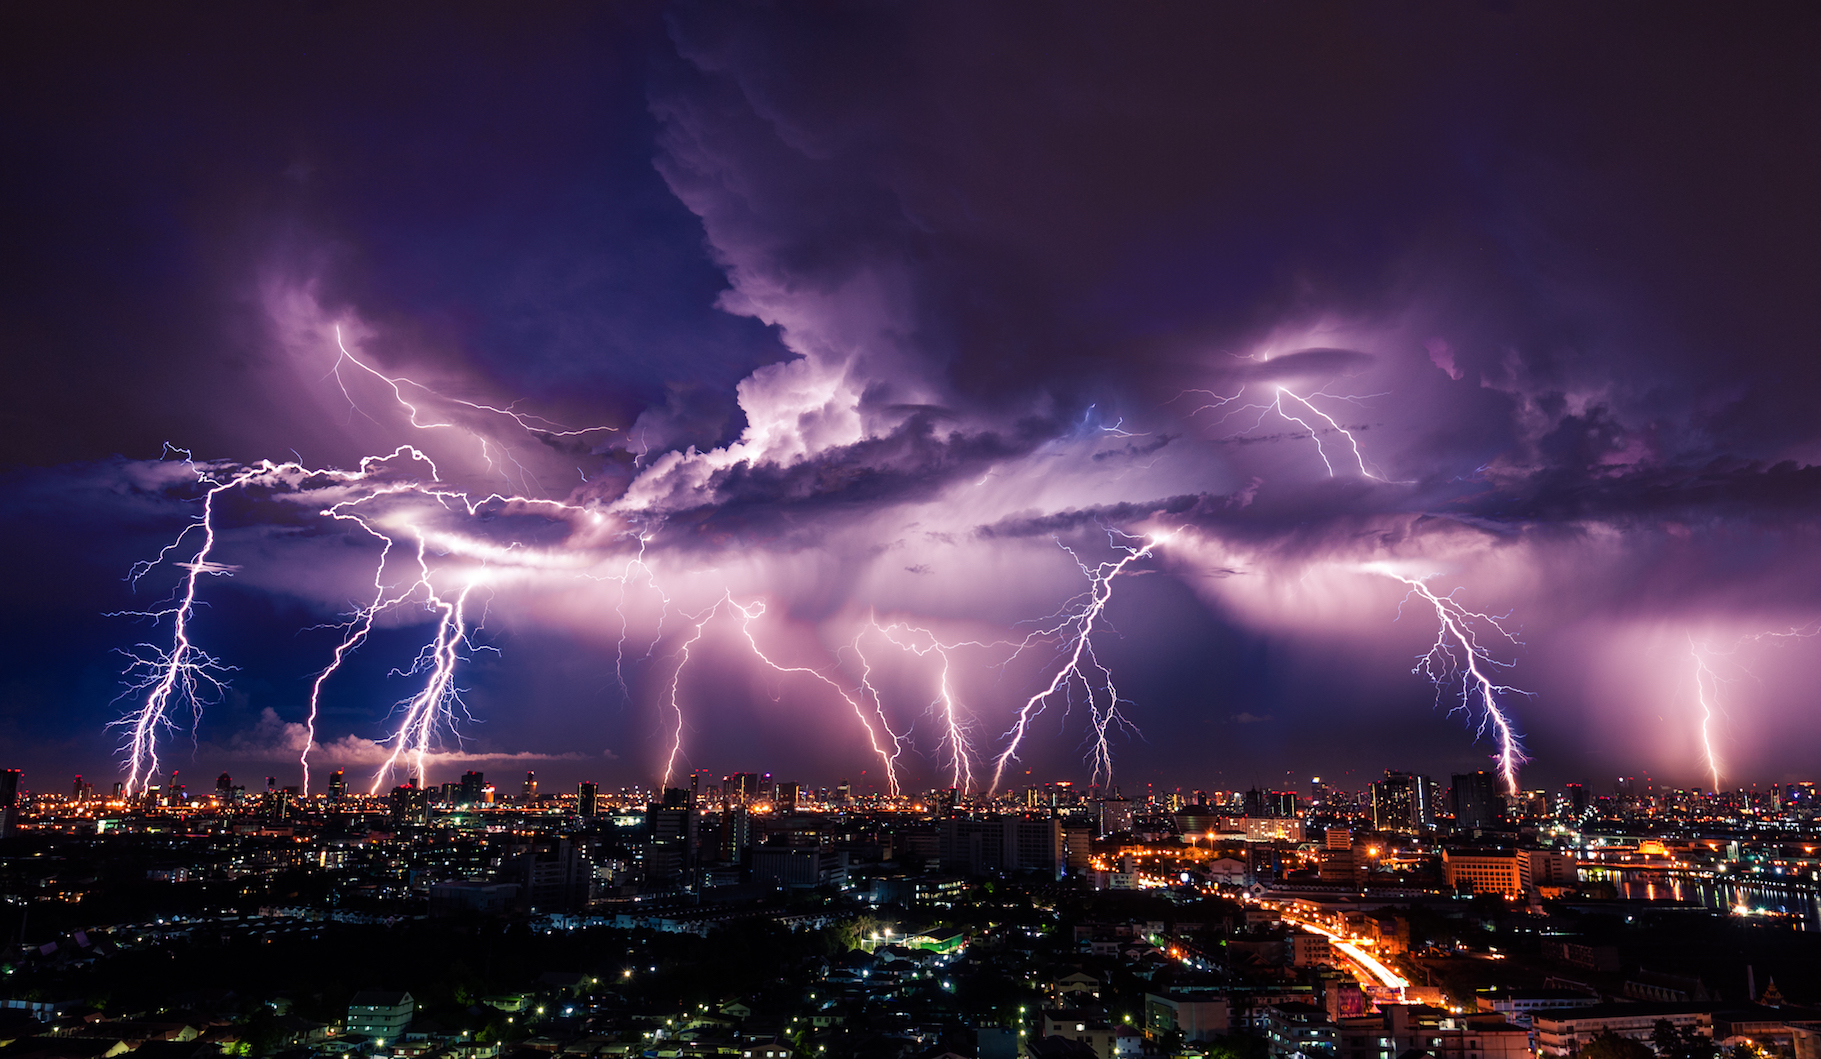 Severe summer thunderstorms in North America are projected to become larger and much more frequent in the coming decades.